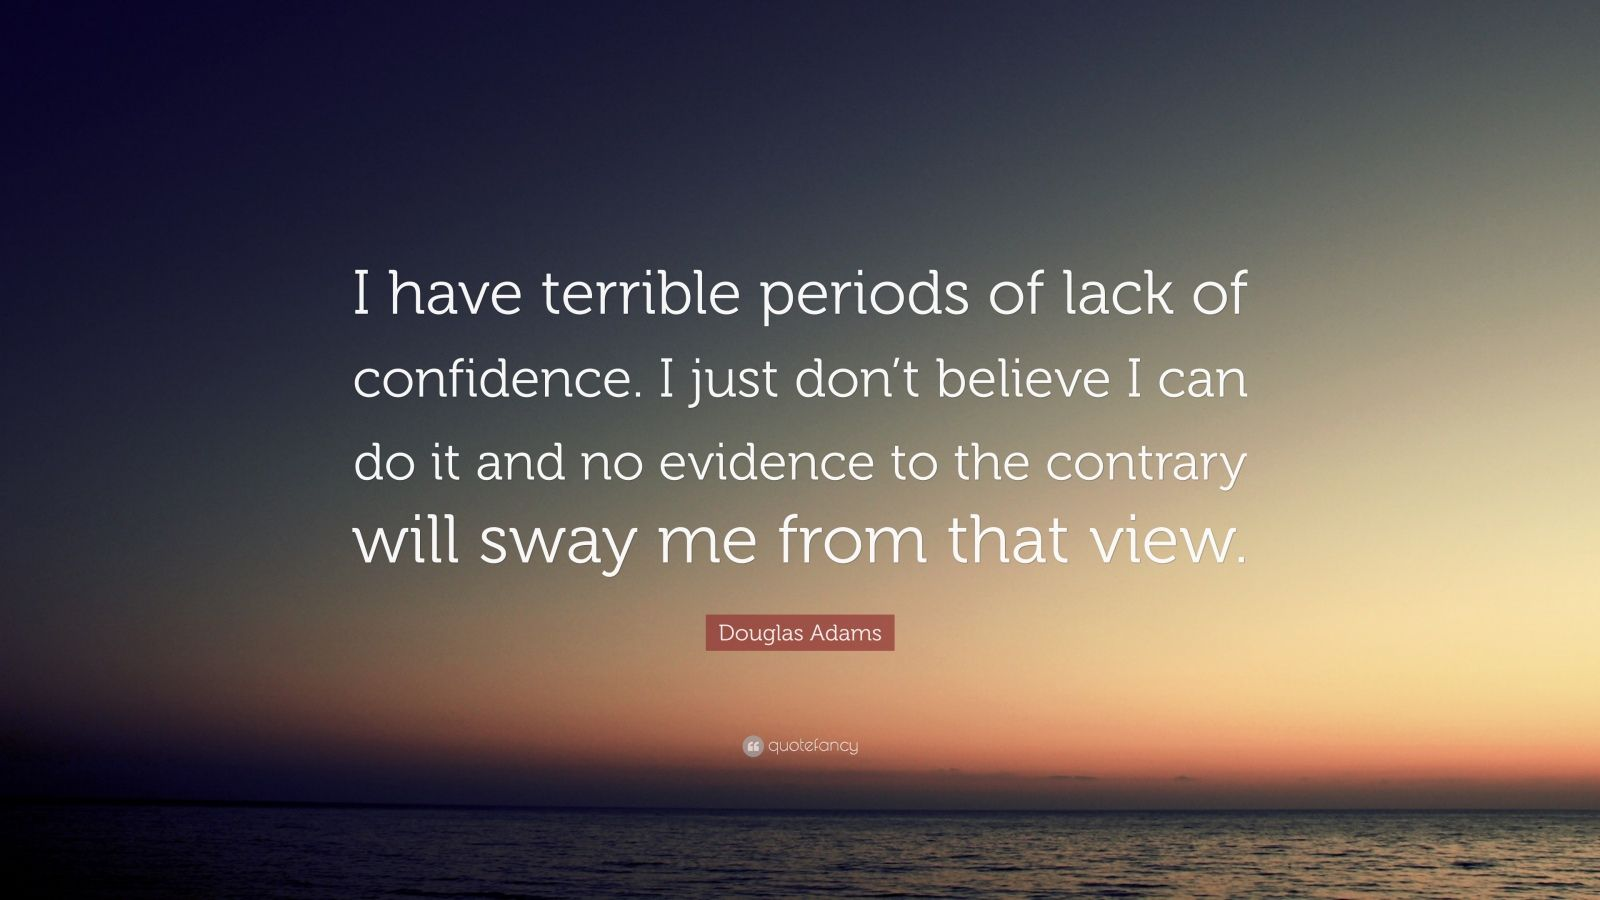 """Douglas Adams Quote: """"I have terrible periods of lack of confidence. I just don't believe I can do it and no evidence to the contrary will sway me from that view."""""""